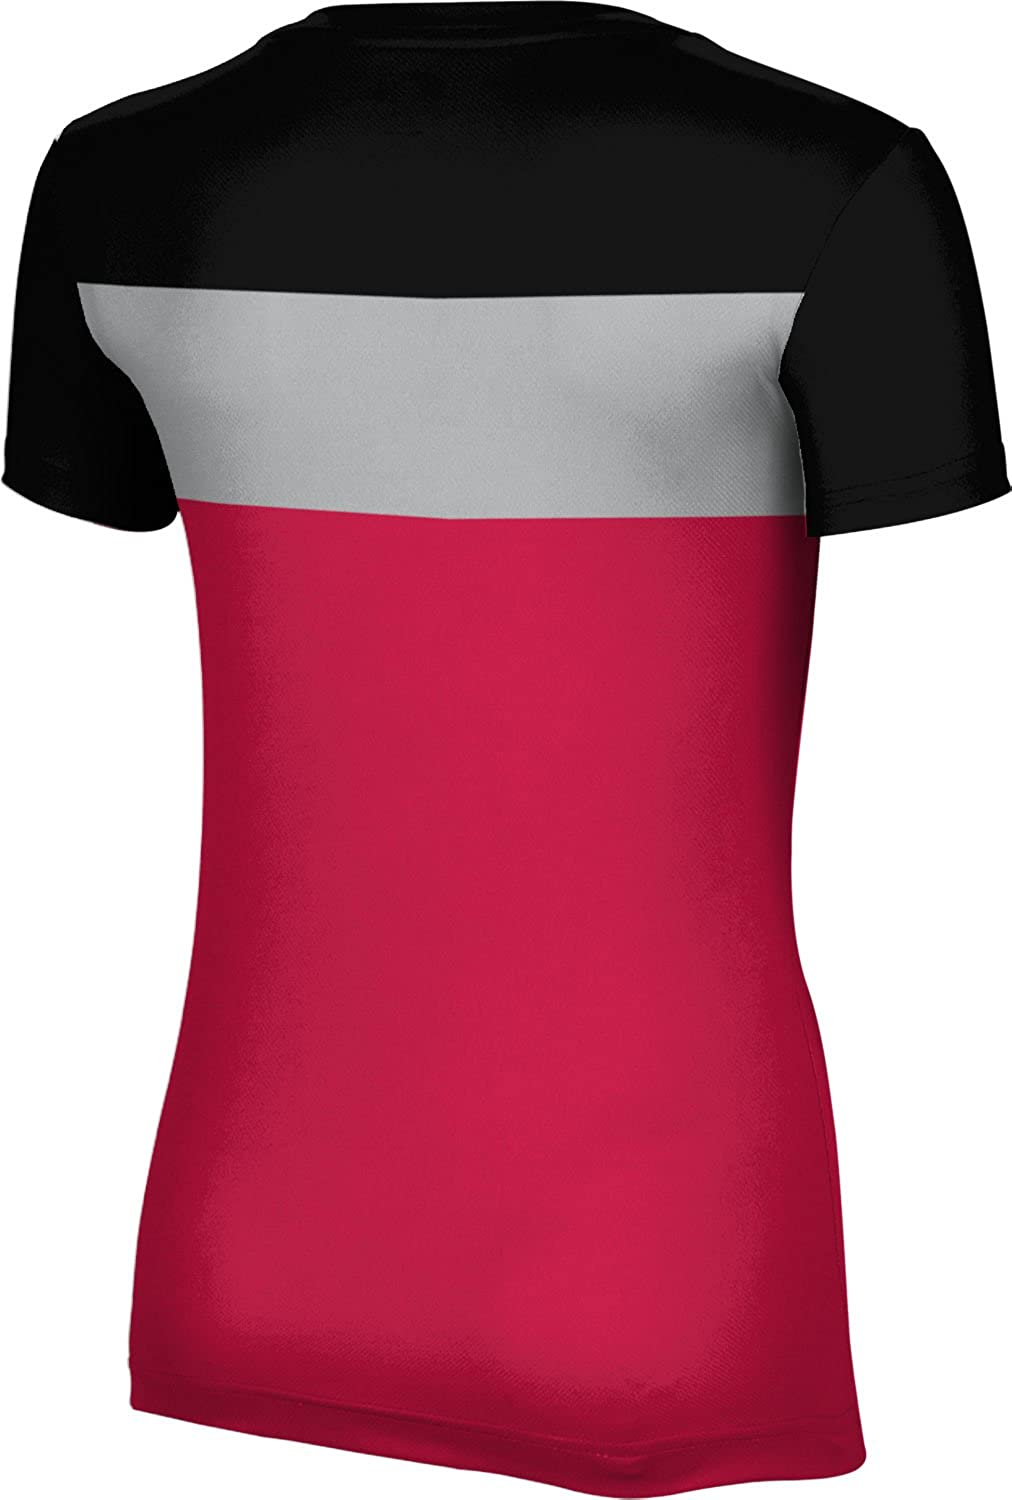 ProSphere Belmont Abbey College Girls Performance T-Shirt Prime